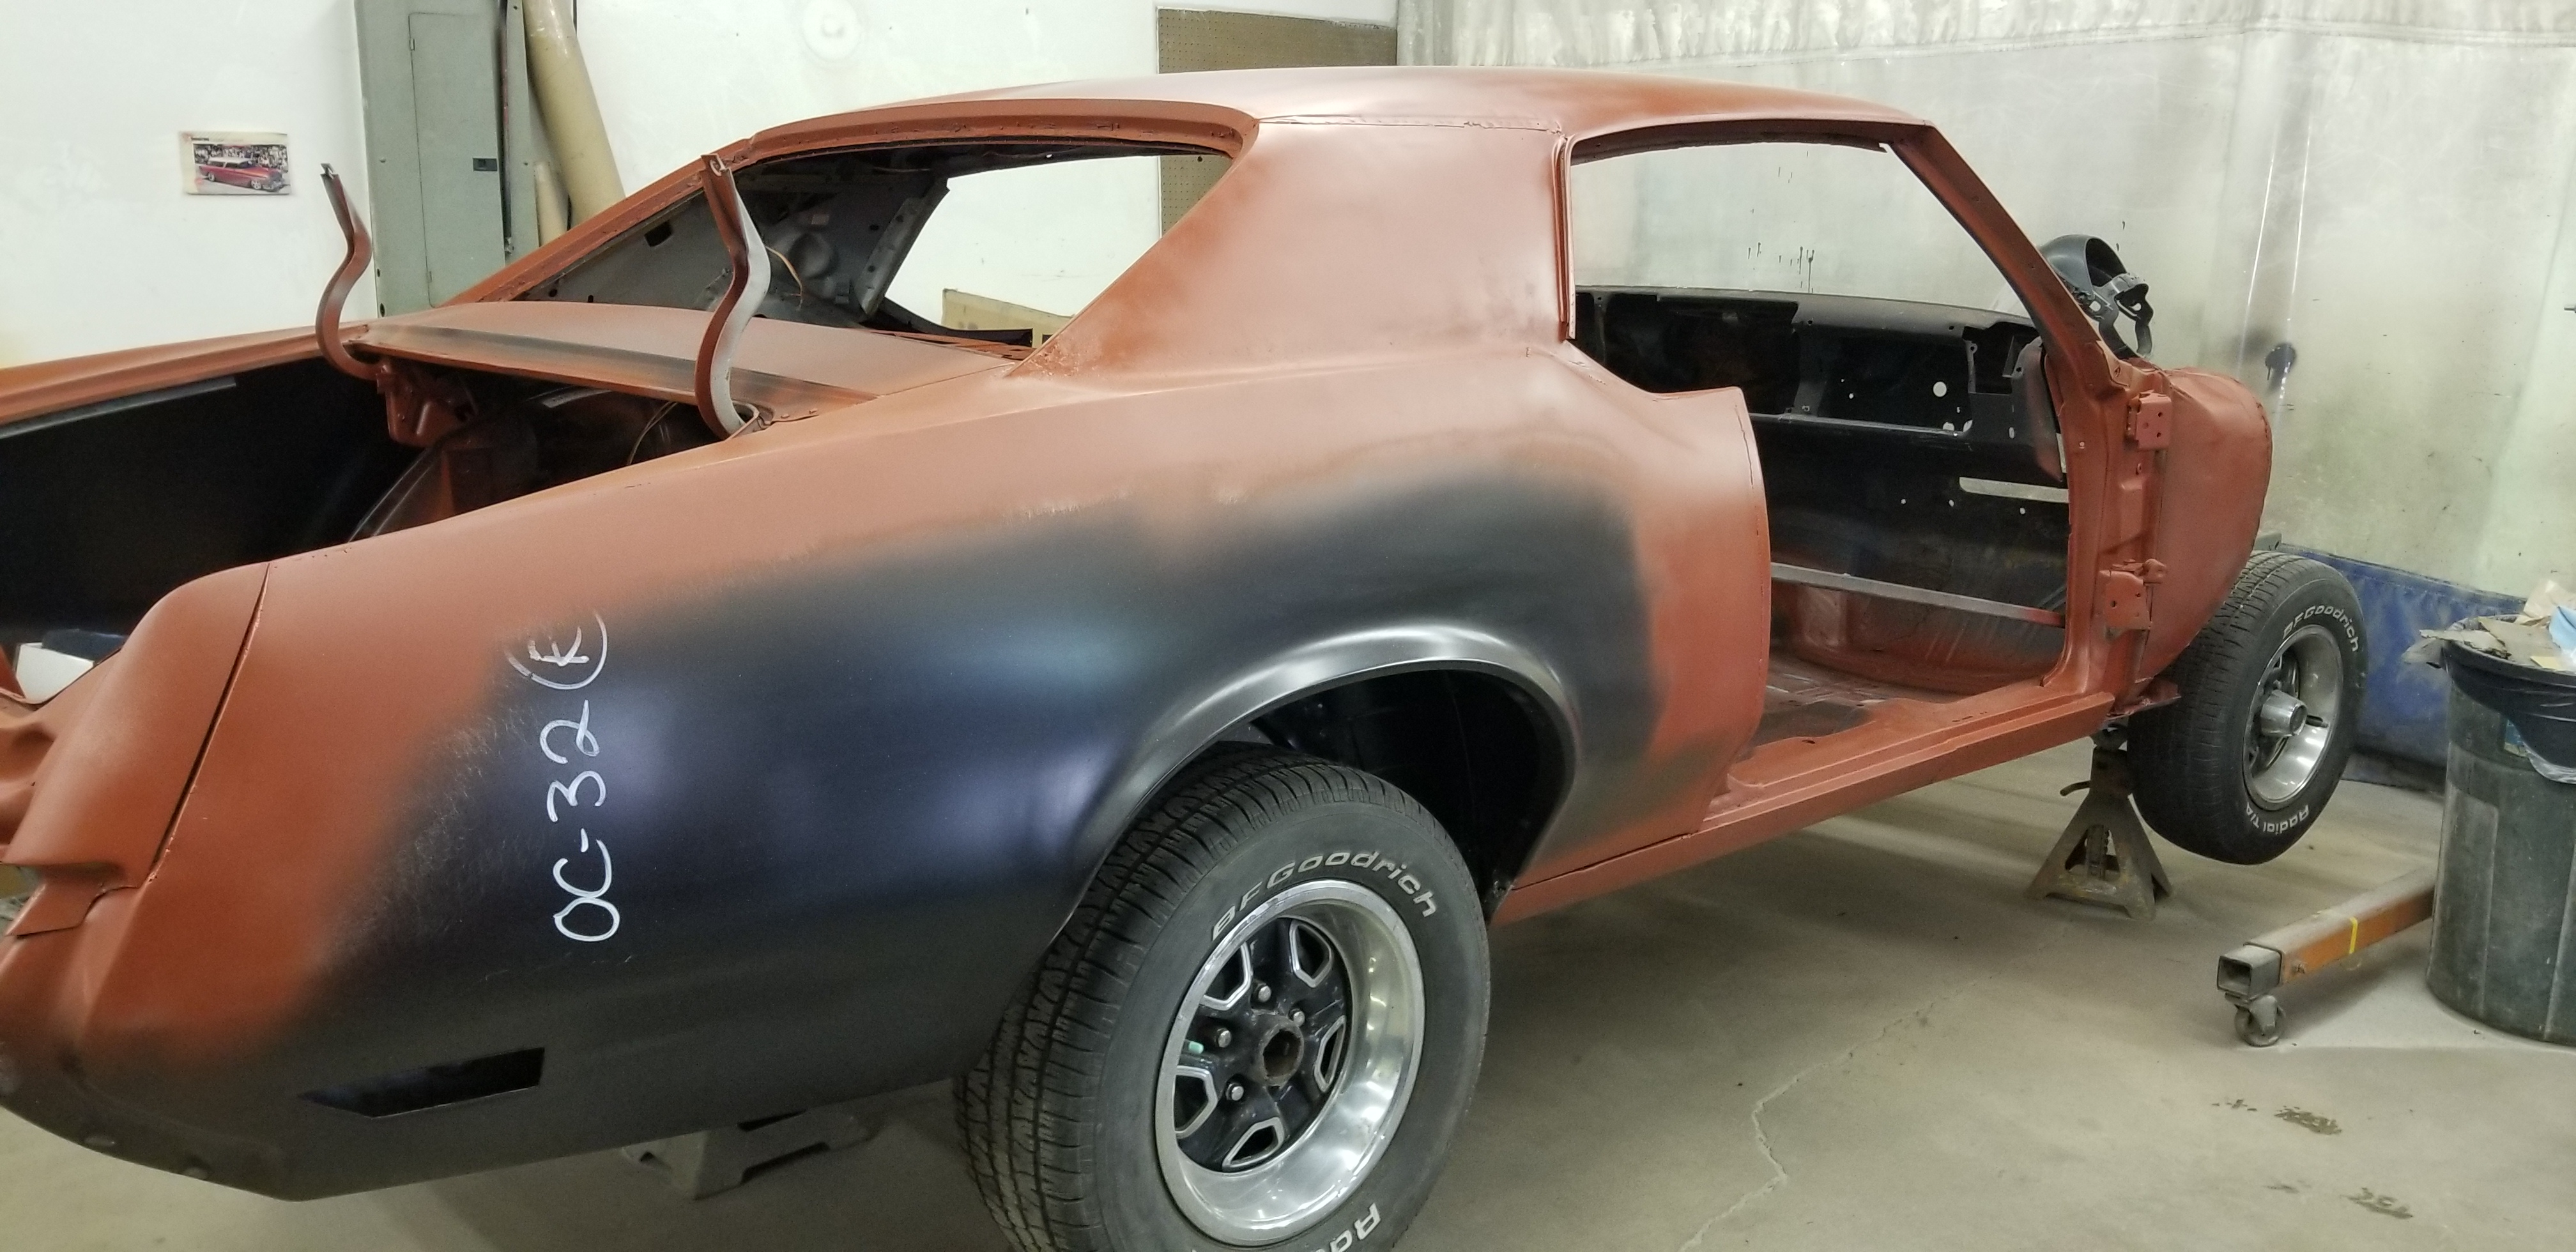 1970 Cutlass Restoration